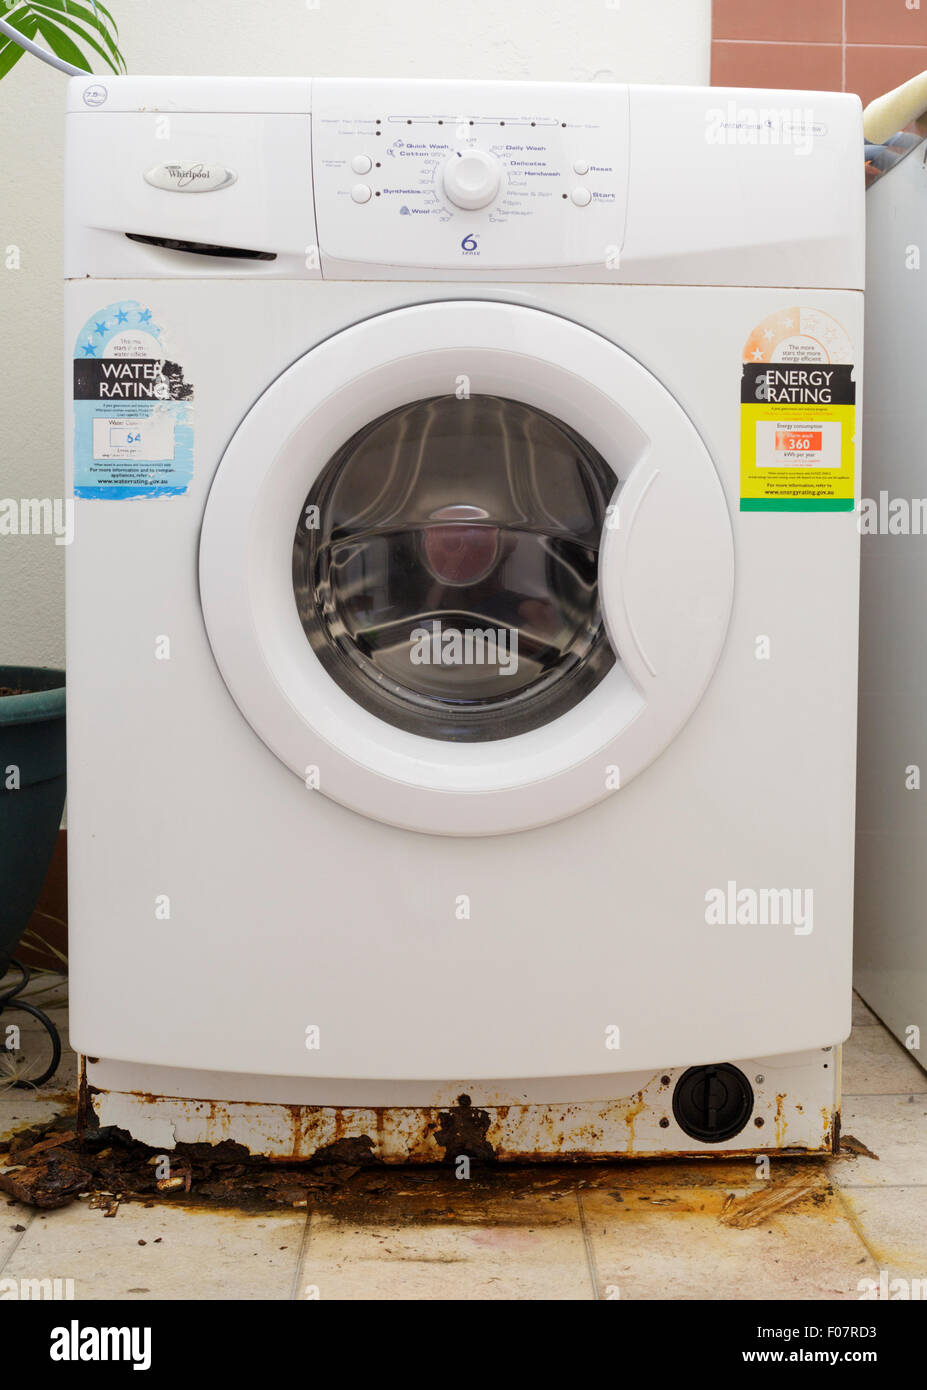 A leaking washing machine with large patches of rust at the base. - Stock Image